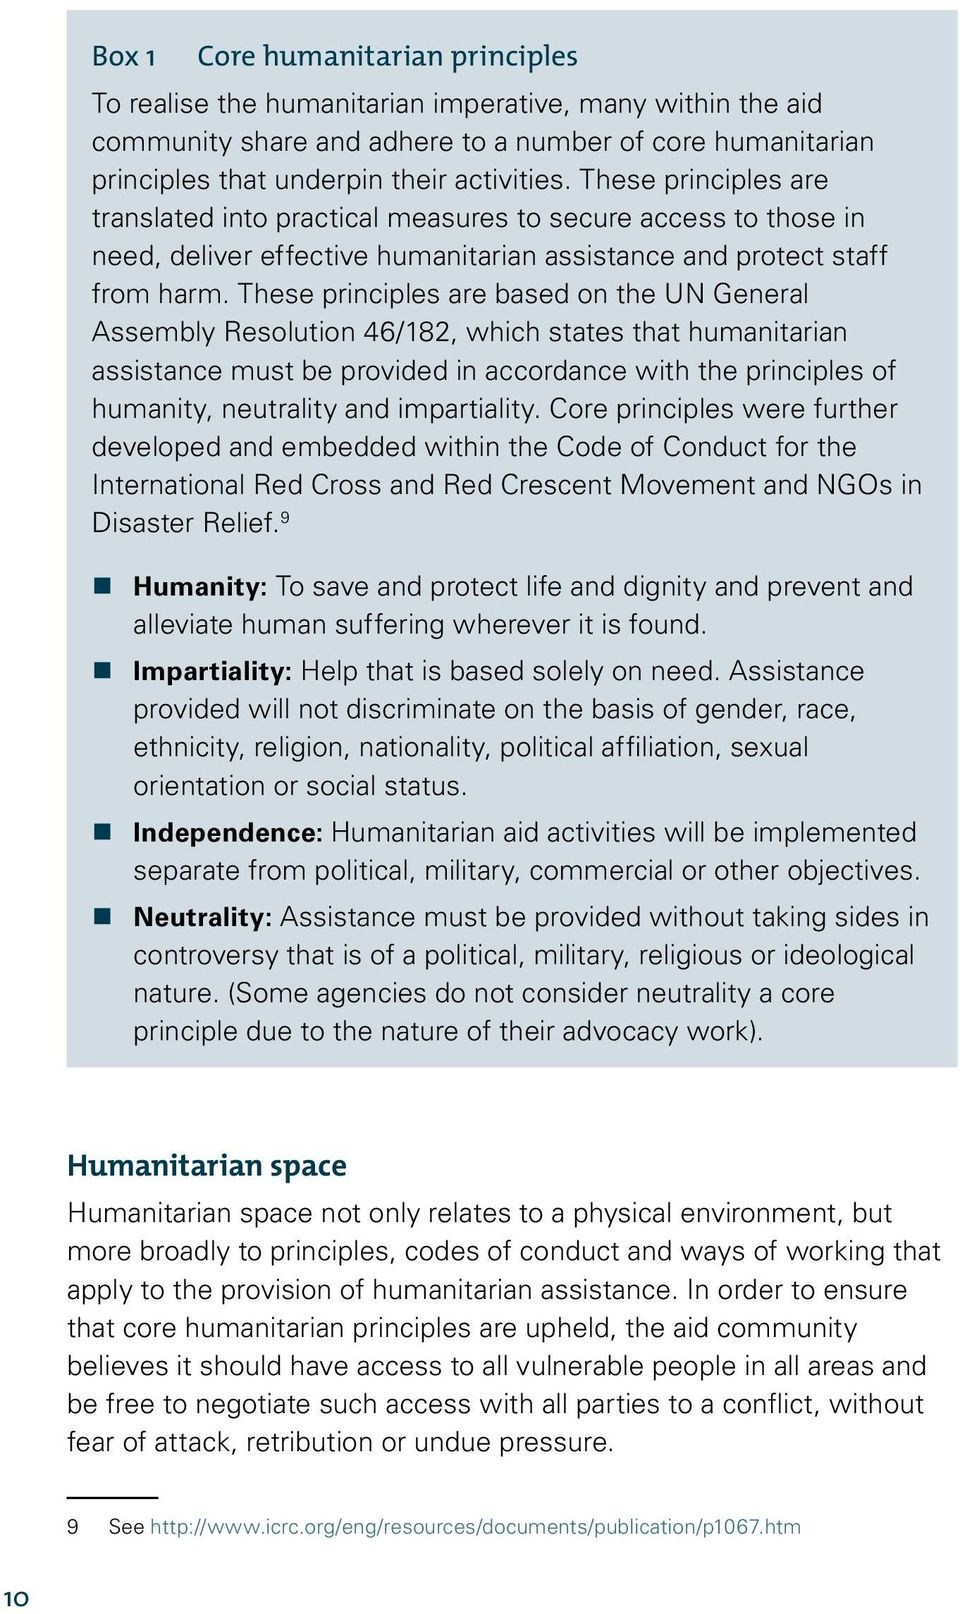 These principles are based on the UN General Assembly Resolution 46/182, which states that humanitarian assistance must be provided in accordance with the principles of humanity, neutrality and